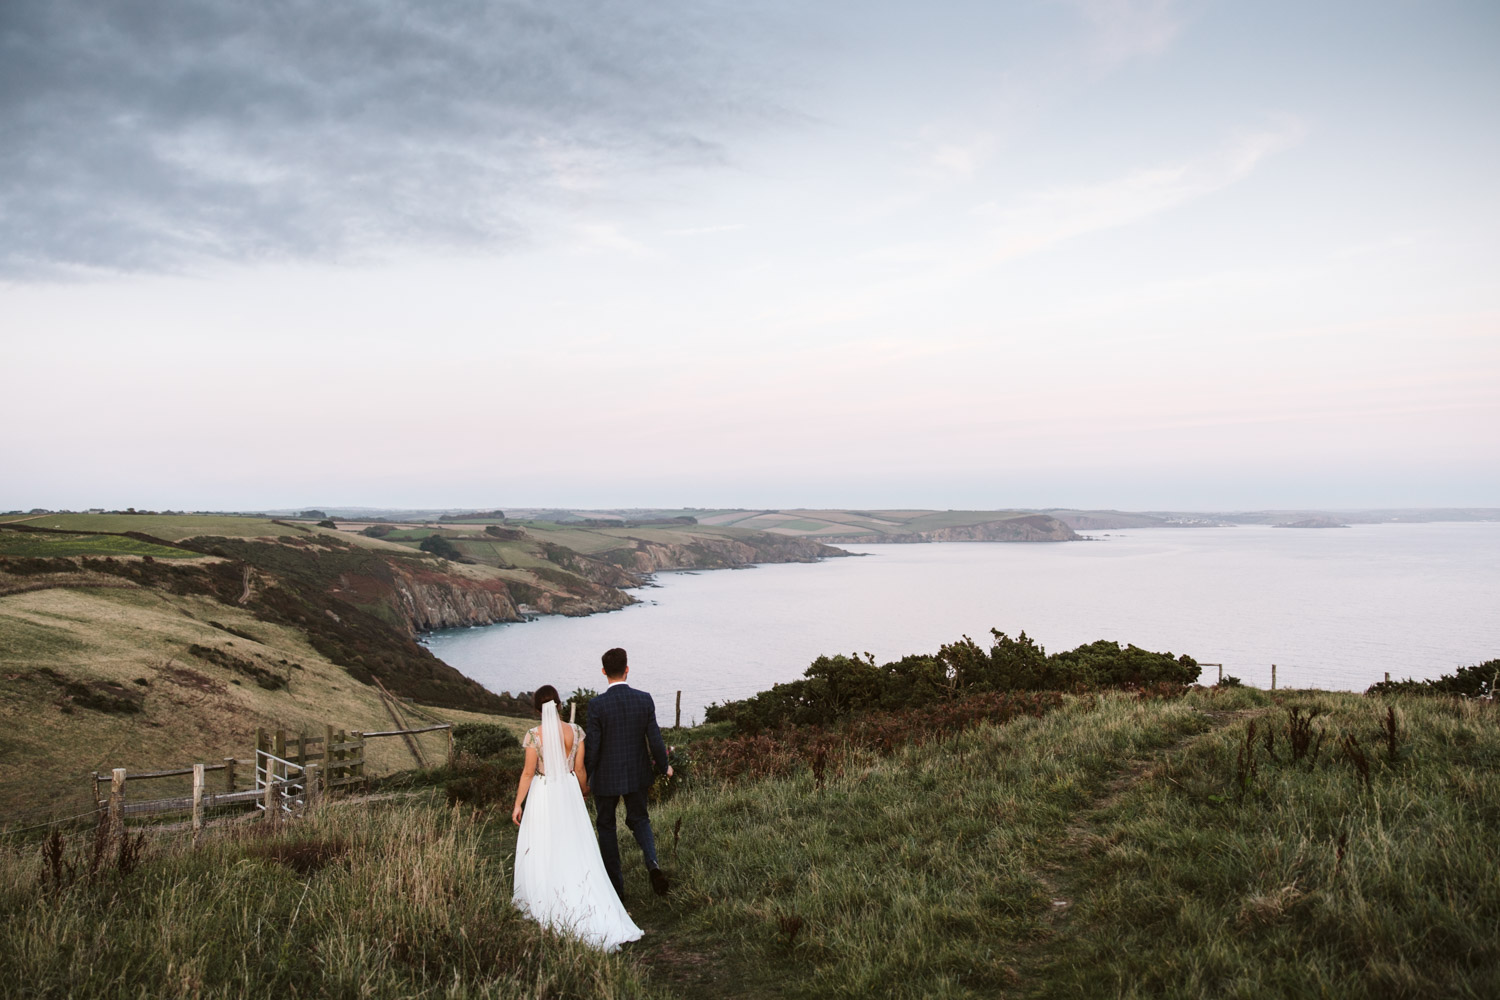 stunning scenery from the clifftop overlooking the sea at sunset